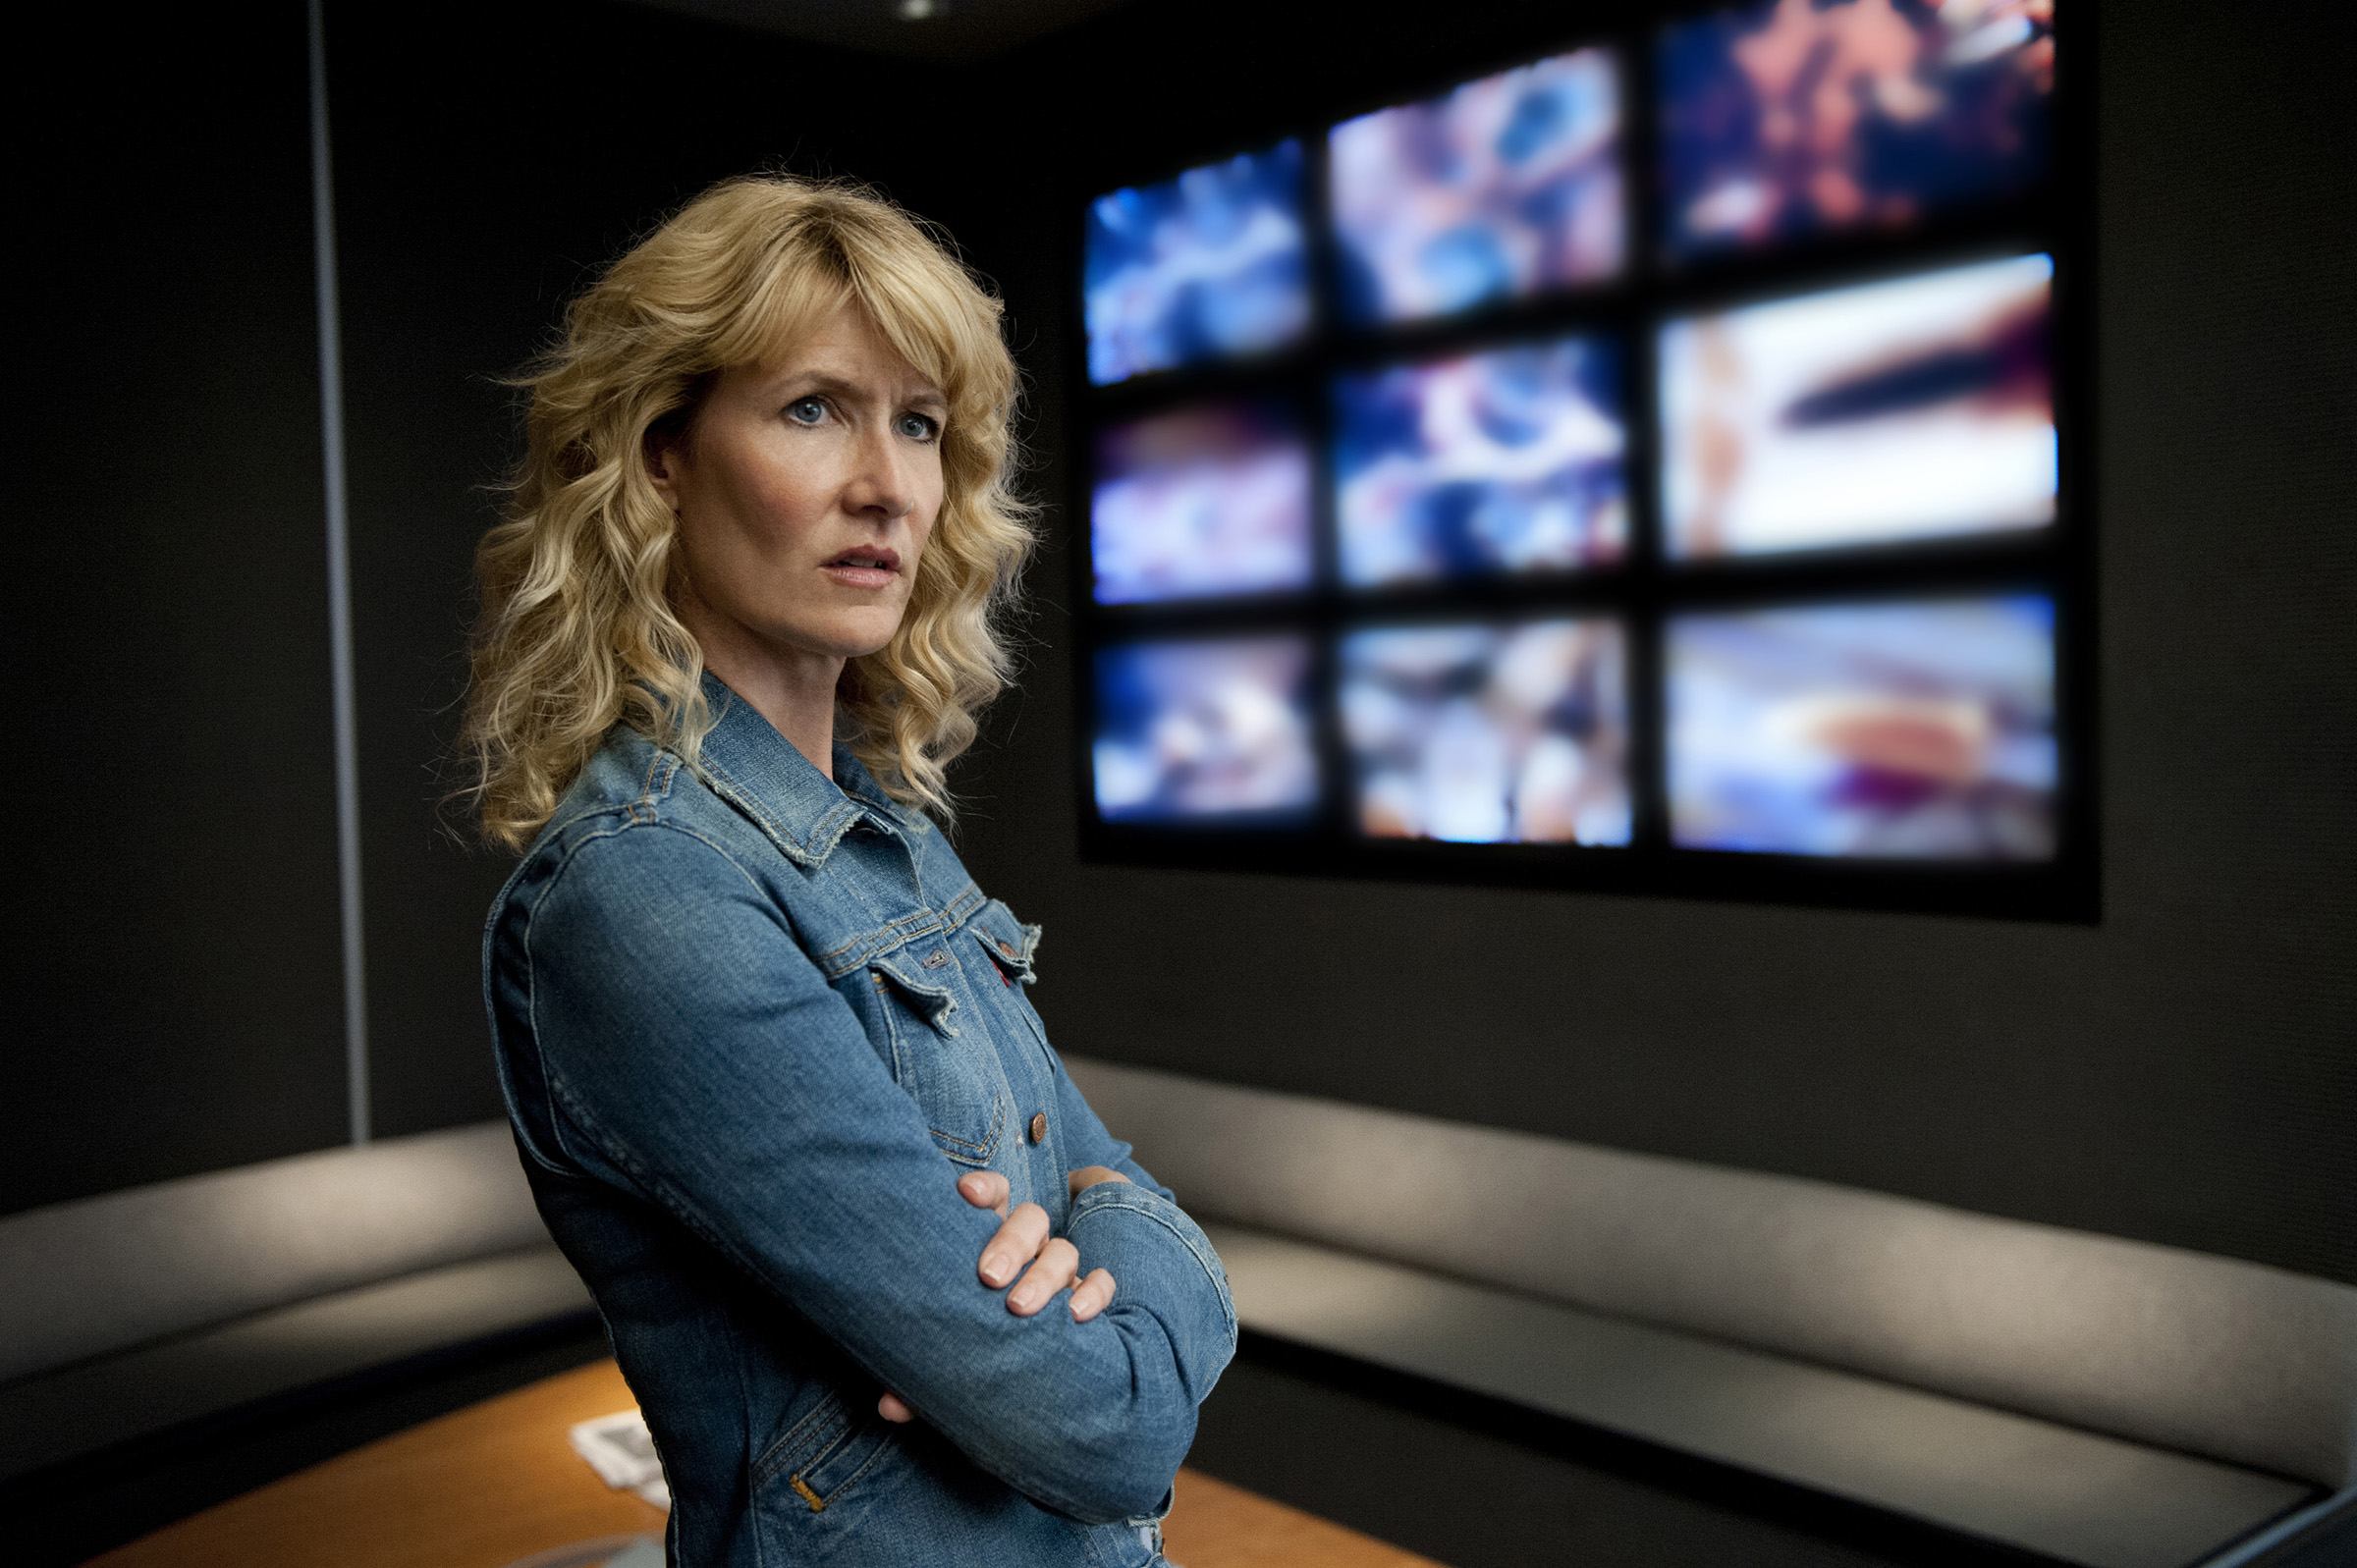 Laura Dern in Enlightened.